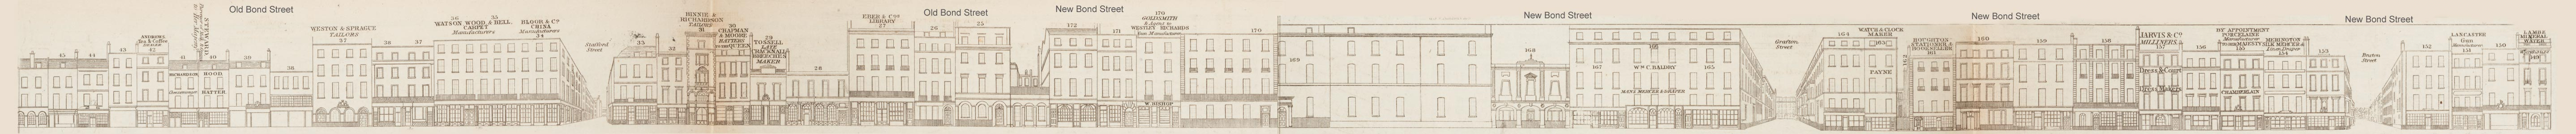 map - Tallis's London street views : No. 7. Bond Street, division 1 (west)